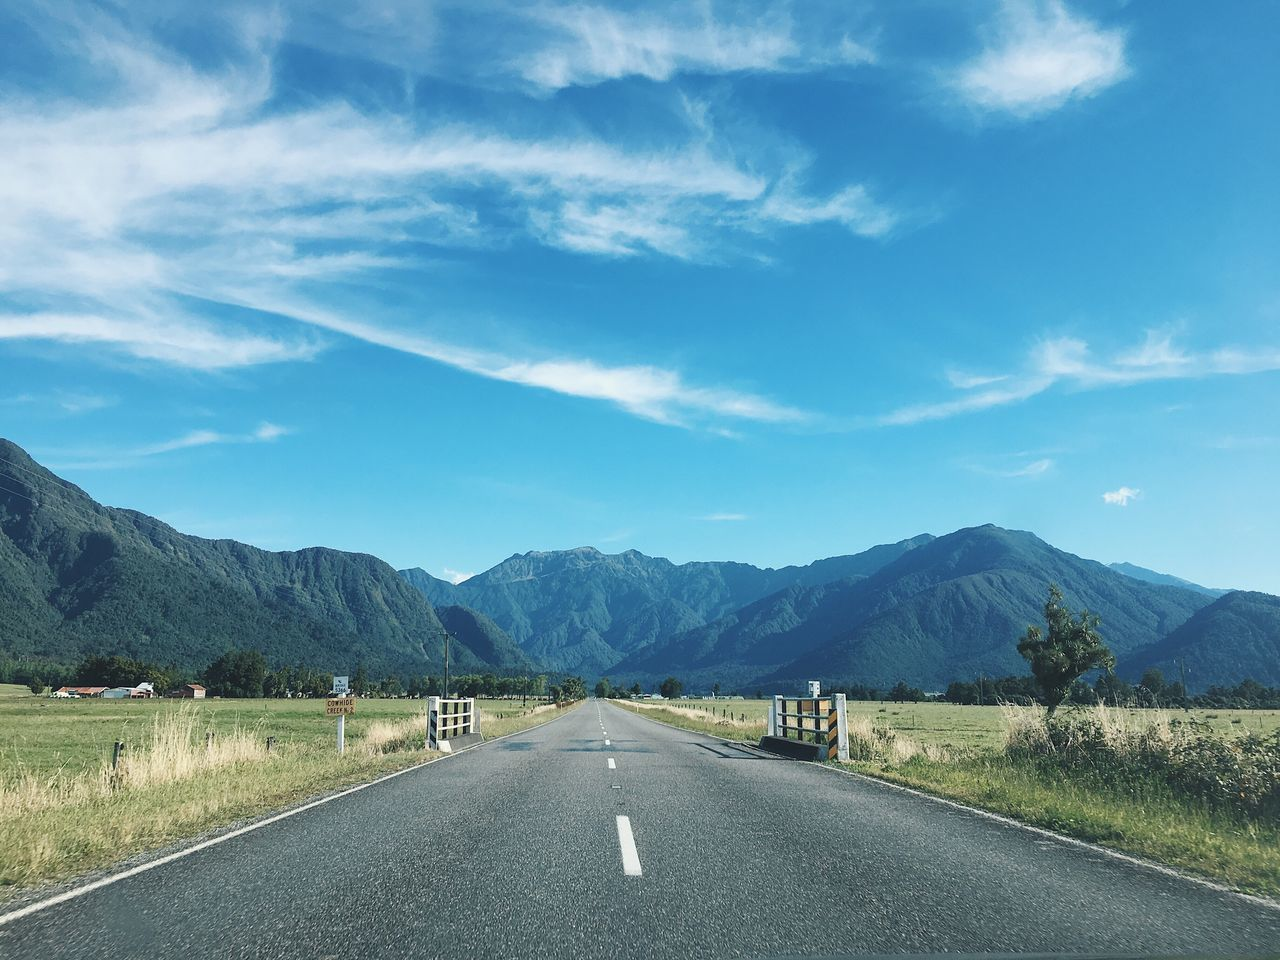 Road Mountain Sky The Way Forward Mountain Range Scenics Day Non-urban Scene Landscape Beauty In Nature Tranquility Outdoors Nature Winding Road Open Road New Zealand Empty